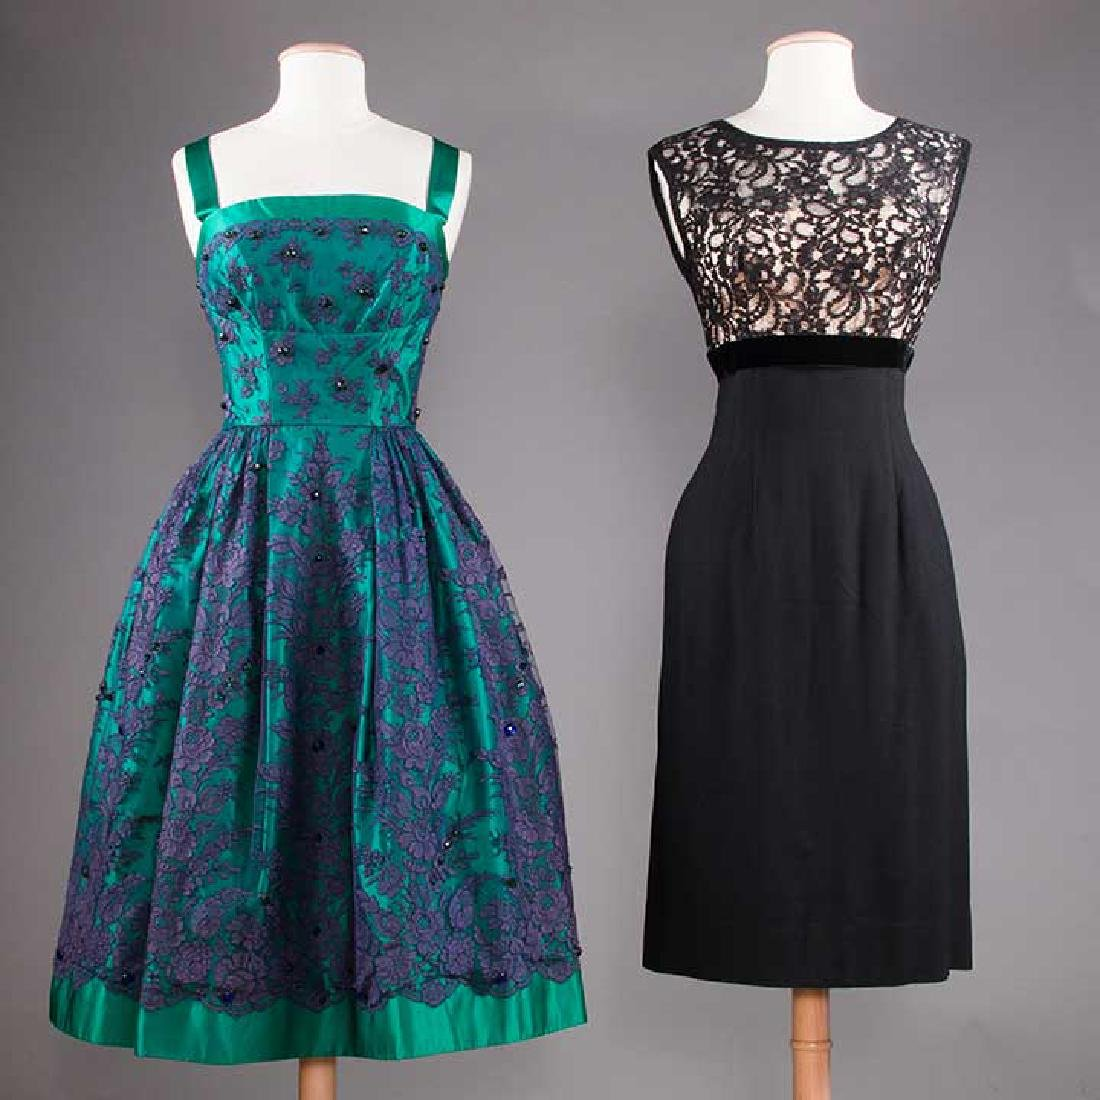 1 GREEN & 1 BLACK PARTY DRESS, 1955-1965